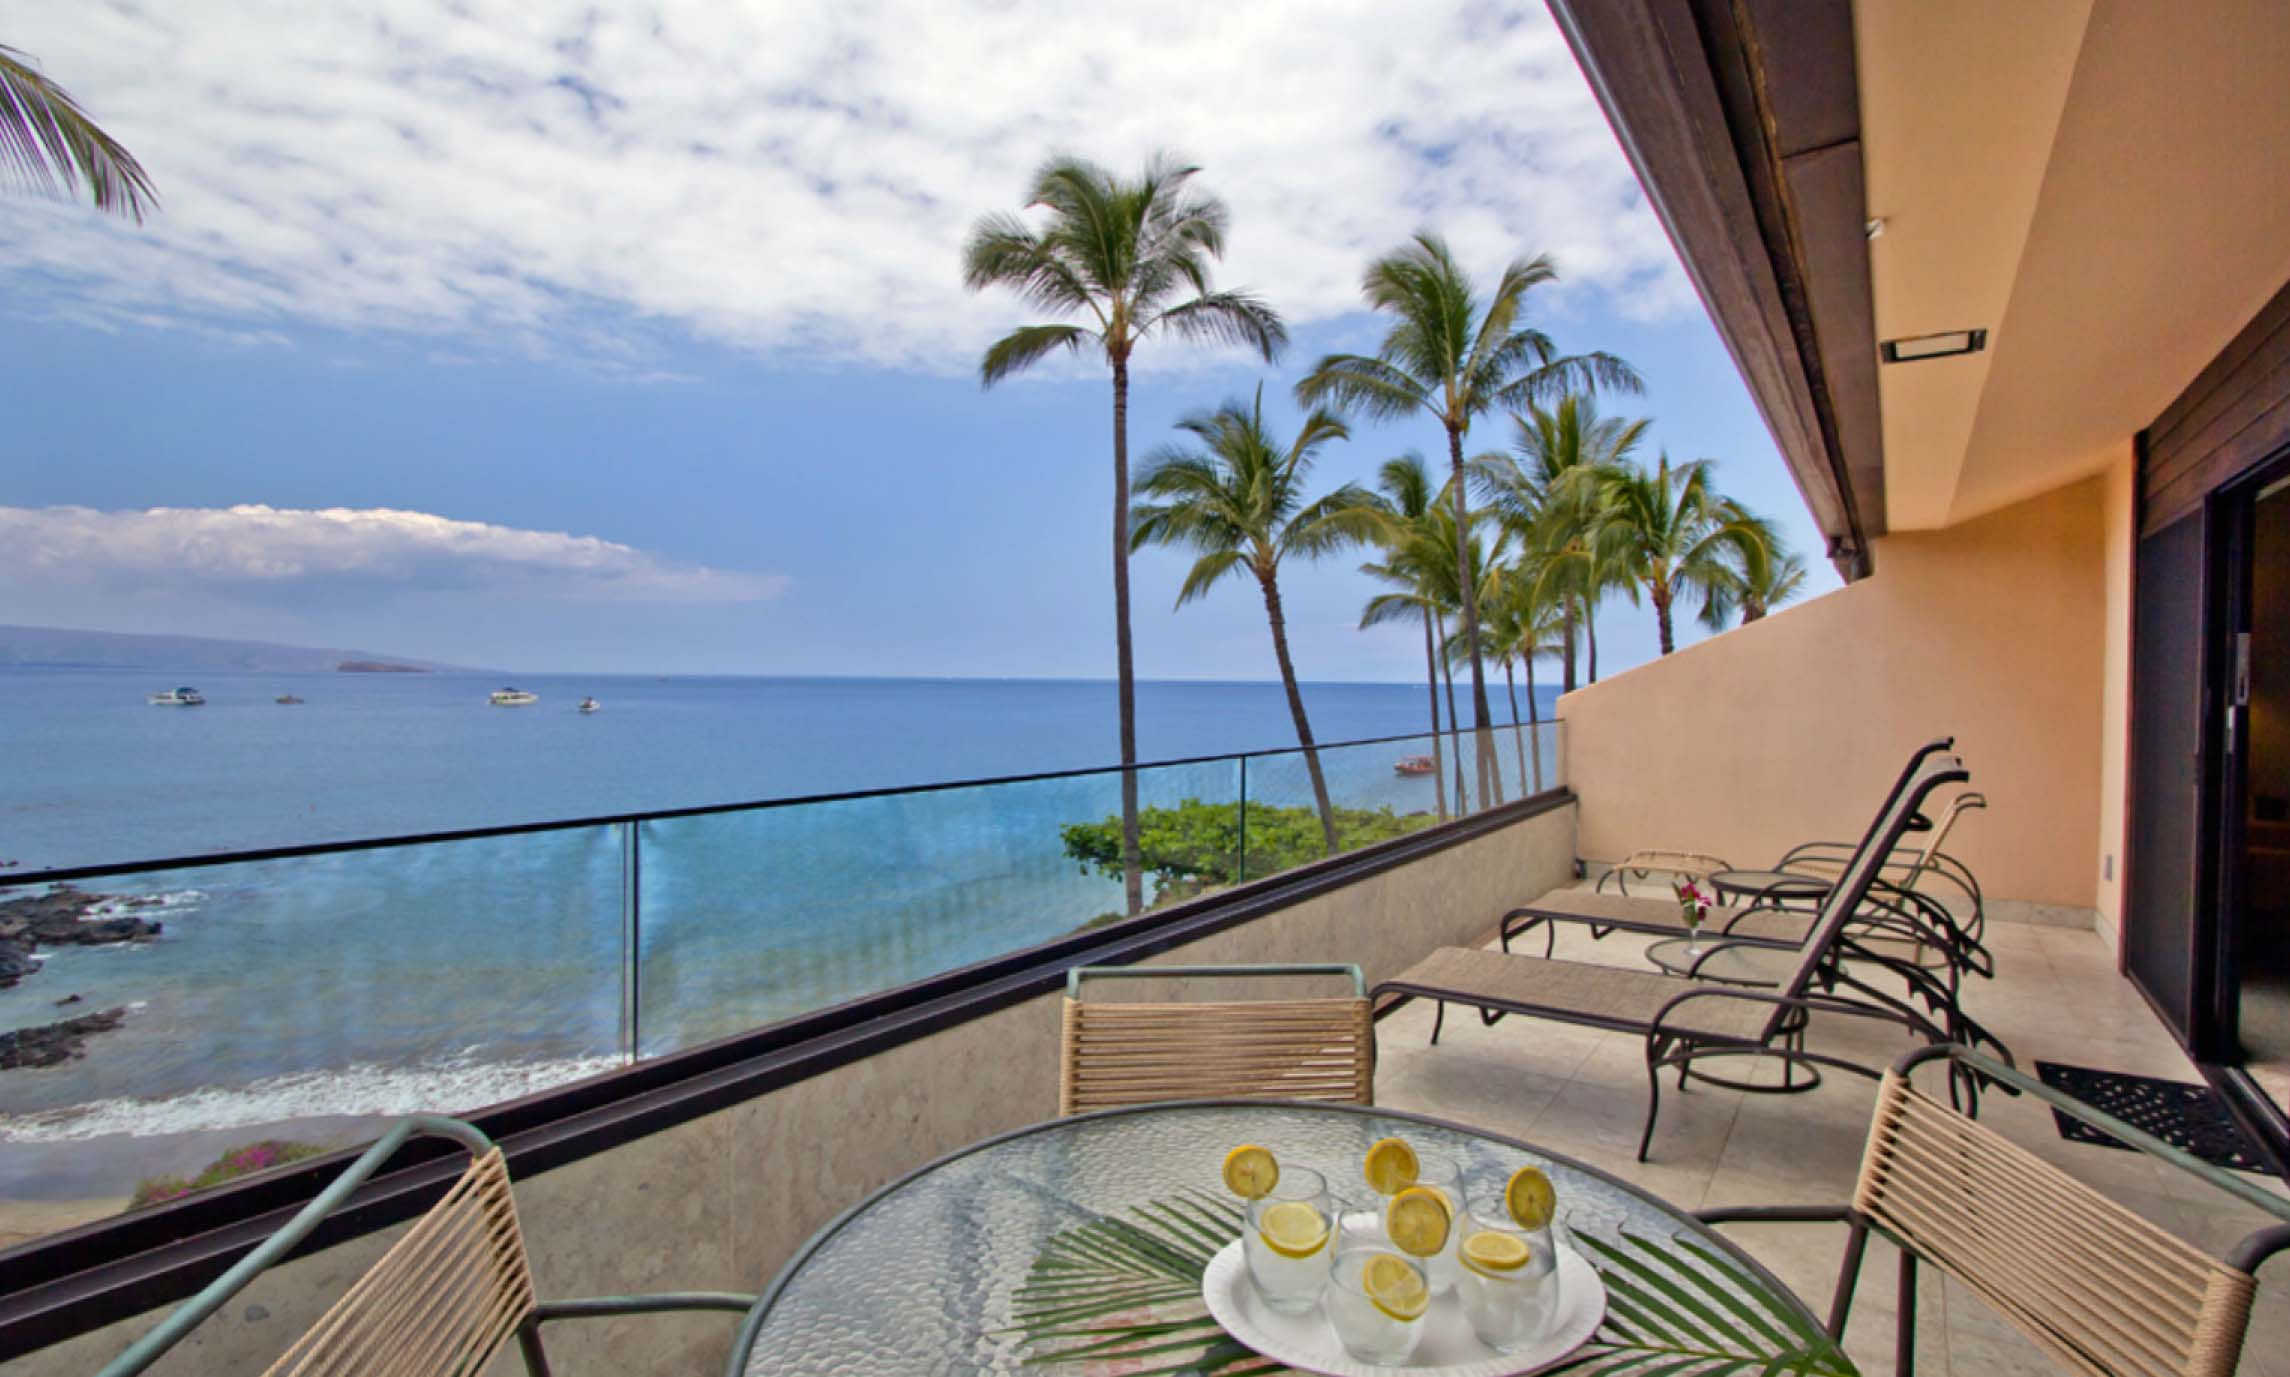 Private deck, lounge chairs, oceanview